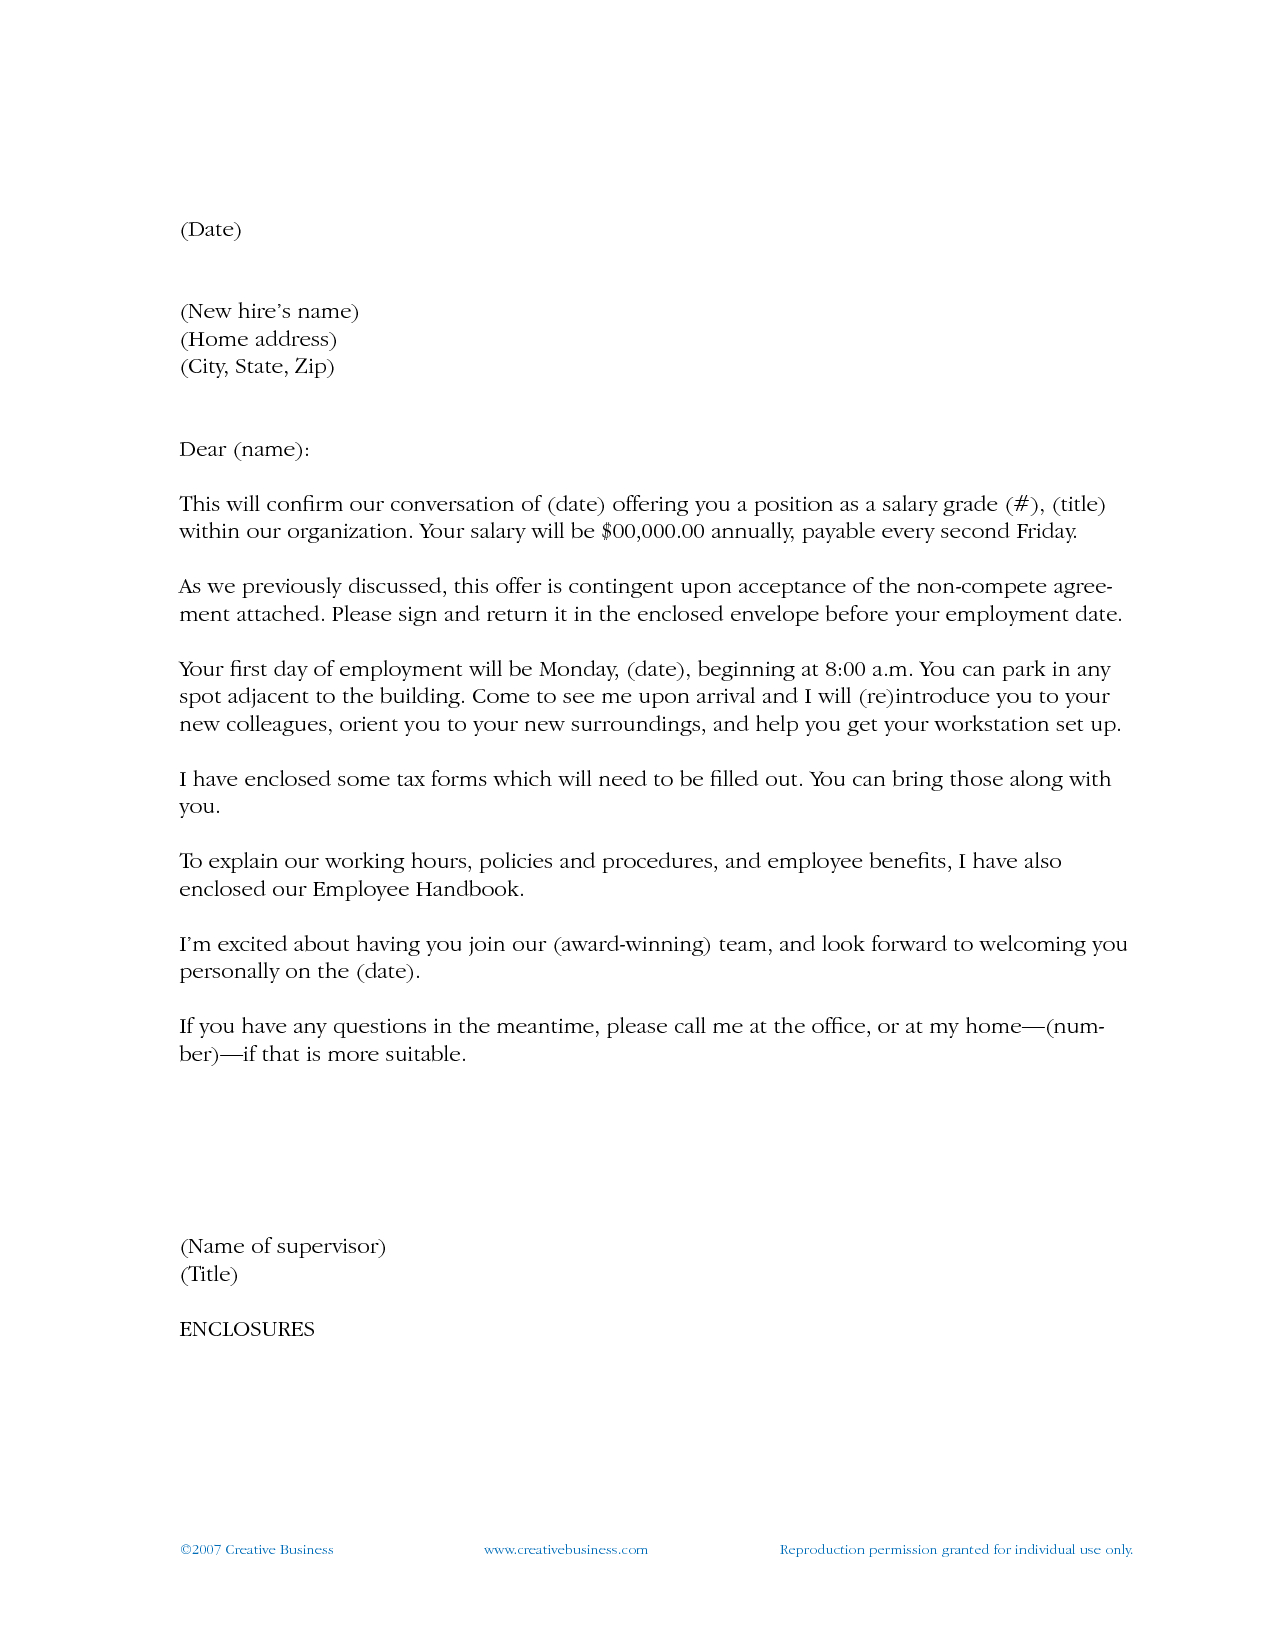 new employee welcome letter sample template example-How to write a wel e letter to a new employee image collections how to write a 16-e